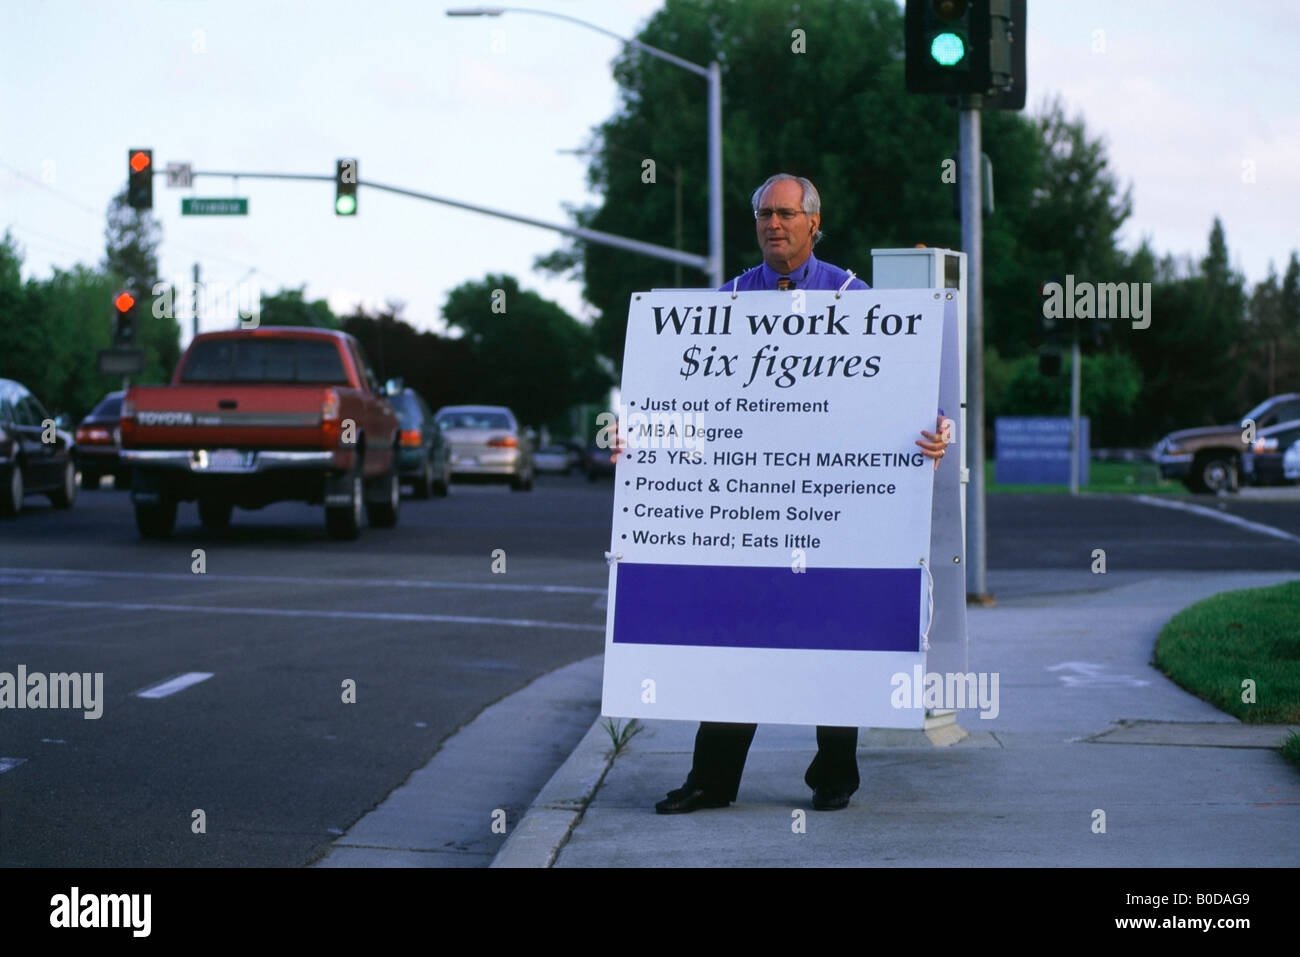 bureau of labor statistics stock photos bureau of labor unemployed former marketing executive stands on a street corner in silicon valley holding a sandwich